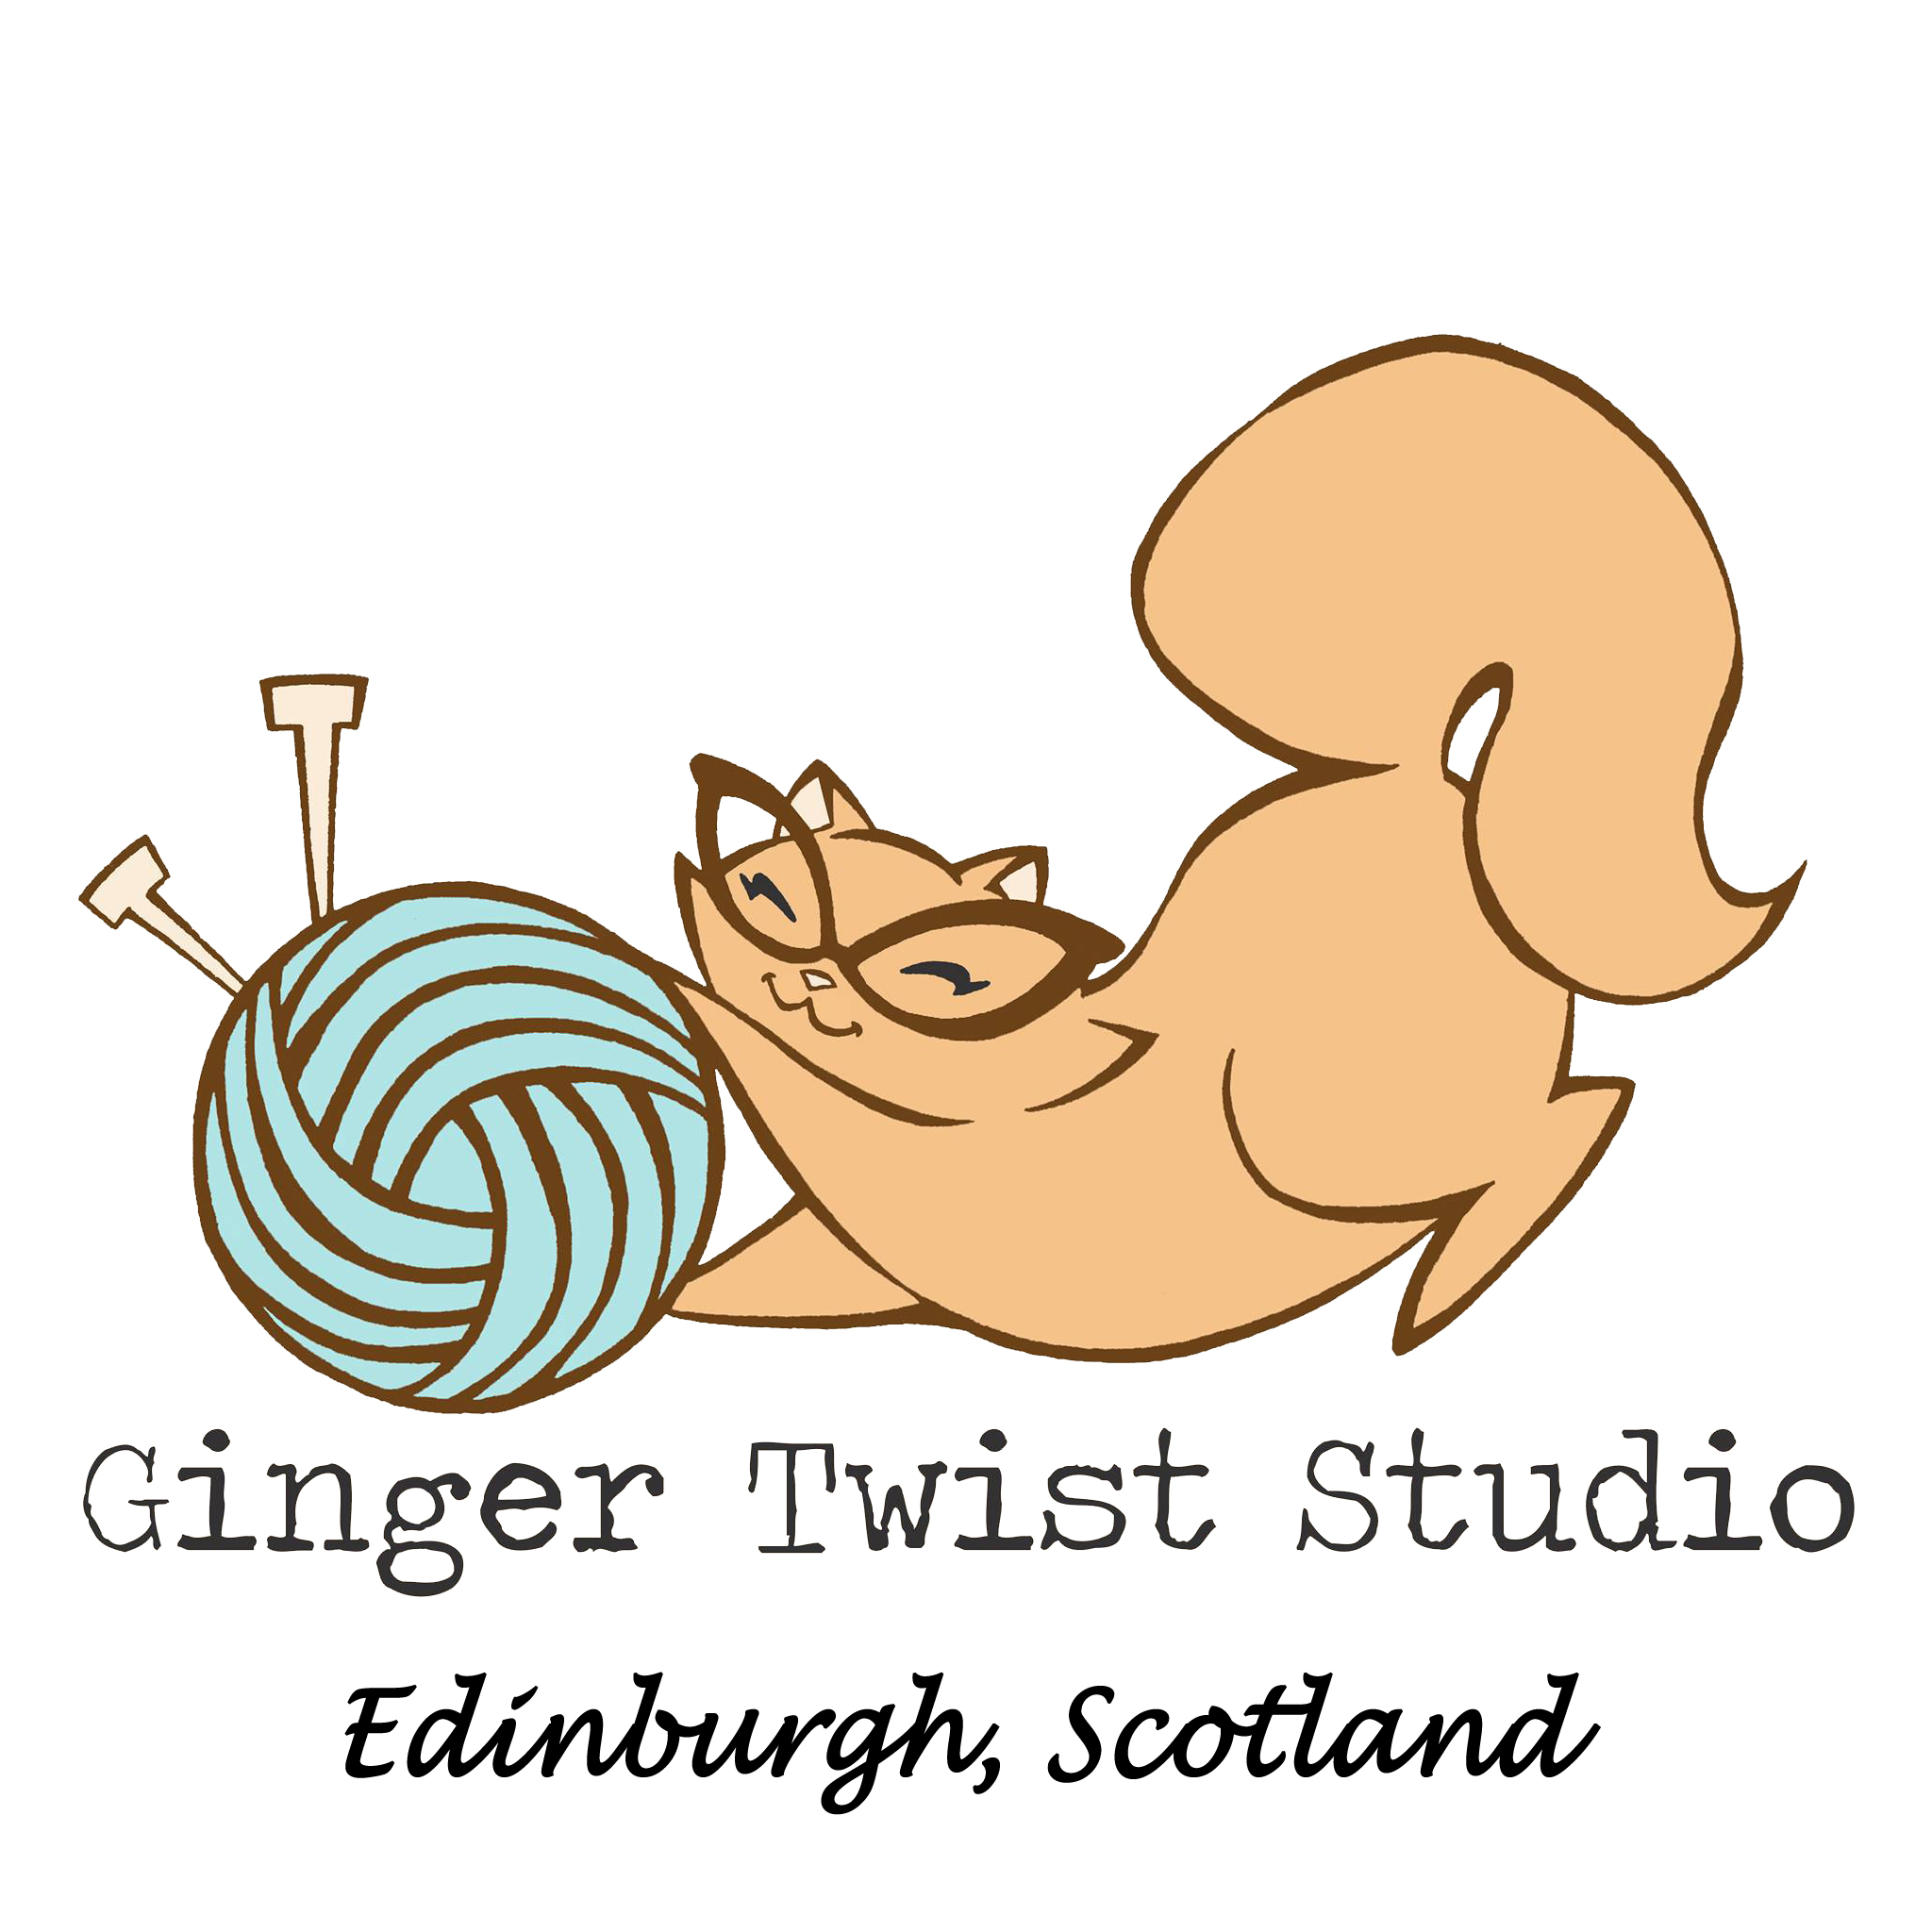 GINGER TWIST STUDIO  Ginger Twist Studio is an adorable wee wool shop in Edinburgh and home to Ginger's Hand Dyed; a gorgeous range of semi-solids dyed by the proprietor herself. The shop is open over EYF weekend and is bursting at the seams with squishy wool, fibre and patterns. Jess is bringing along a delicious selection of her yarns to EYF.